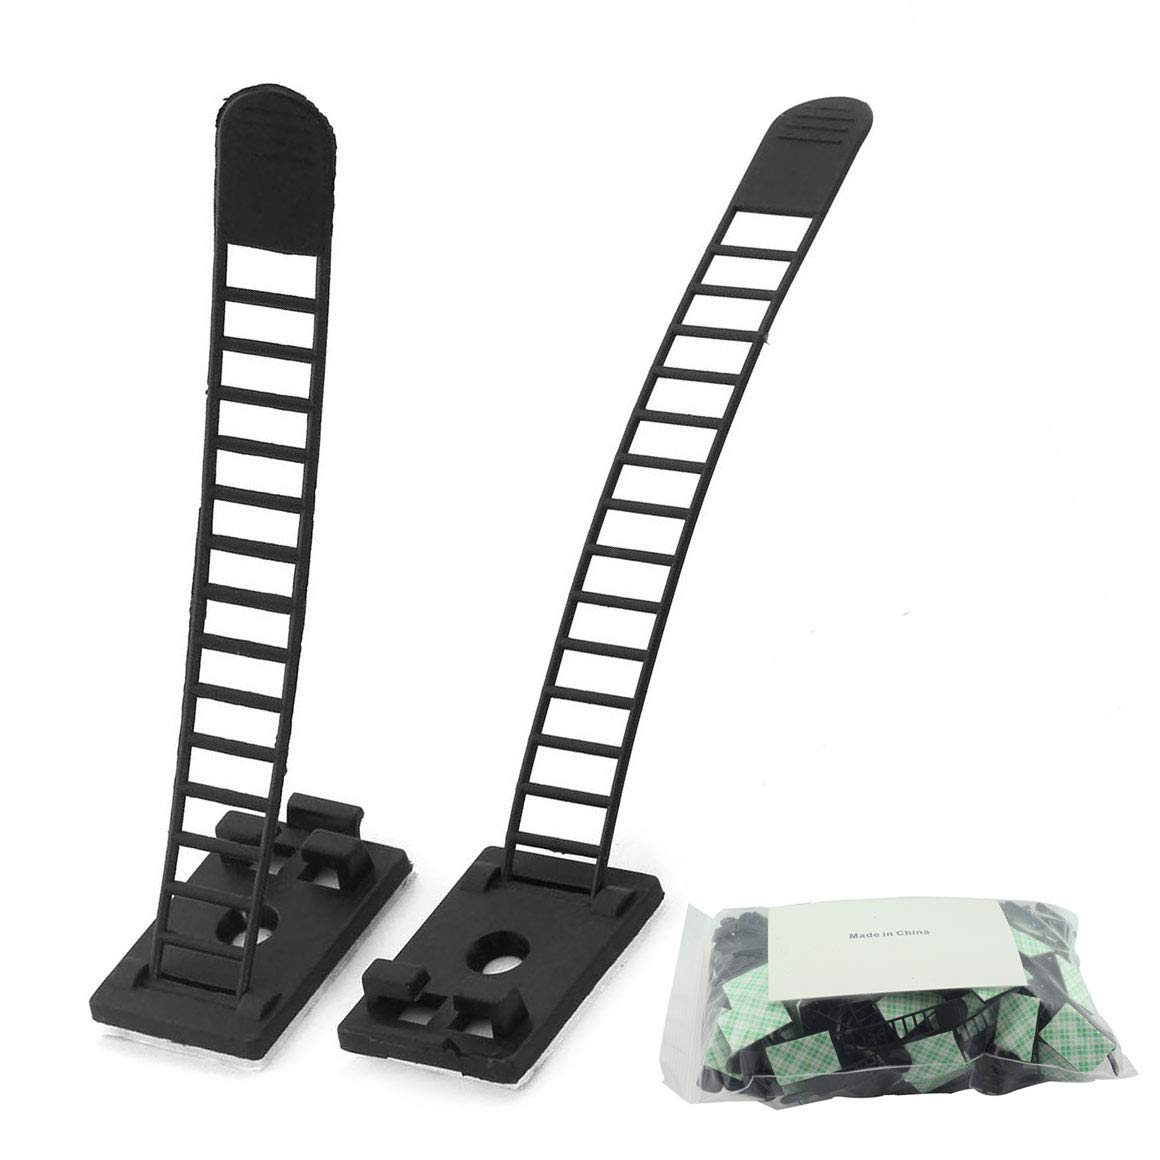 100pcs 91mm Adjustable Self Adhesive Cable Clips Wire Organizer with Optional Screw Mount for Electric Wiring Accessories Cable Clamp Clips Fixed Fasten Cable Tie Black